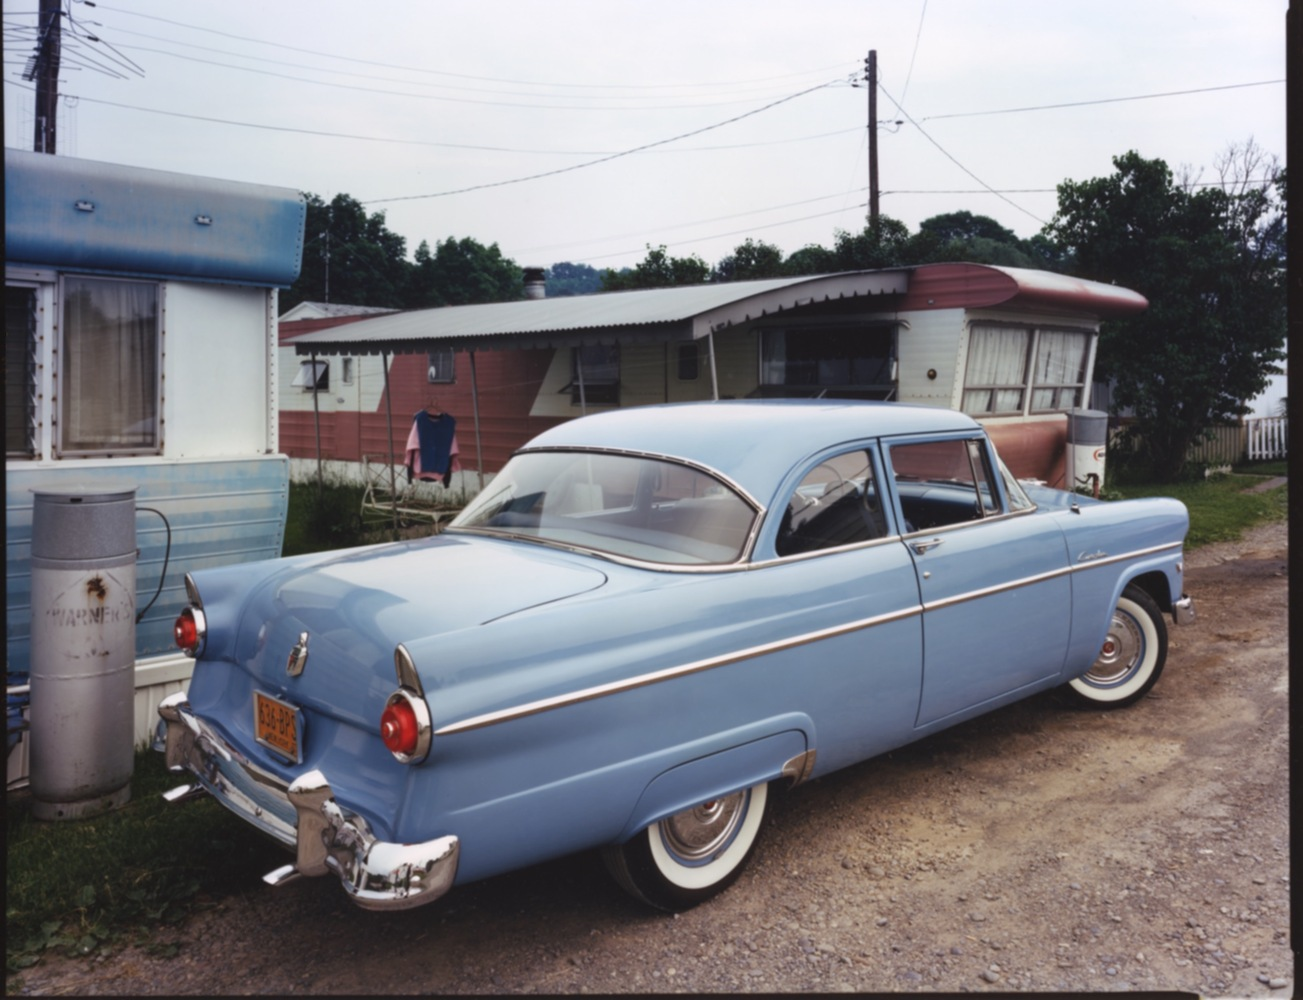 1955 Ford Customline, trailer homes near Binghmaton, NY, c. 1987